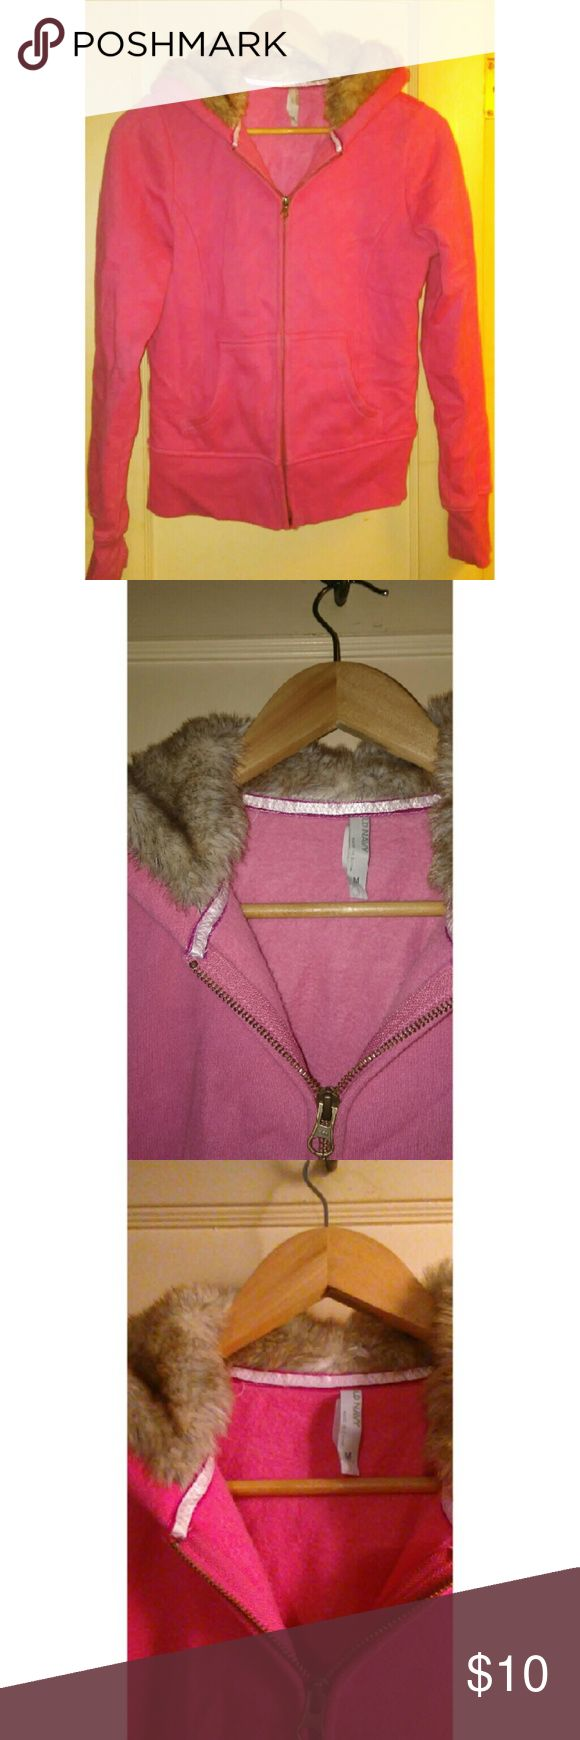 OldNavy Fur Hoodie Medium Pink OLDNAVY hoodie, Fleece Lined, Very warm faux fur lined hood, Sized Medium (true to size) Close up picture offers detailed look at condition 9/10 (10 being brand new never worn) This was maybe worn twice if that all around very warm\comfortable fullzip hoodie Old Navy Tops Sweatshirts & Hoodies